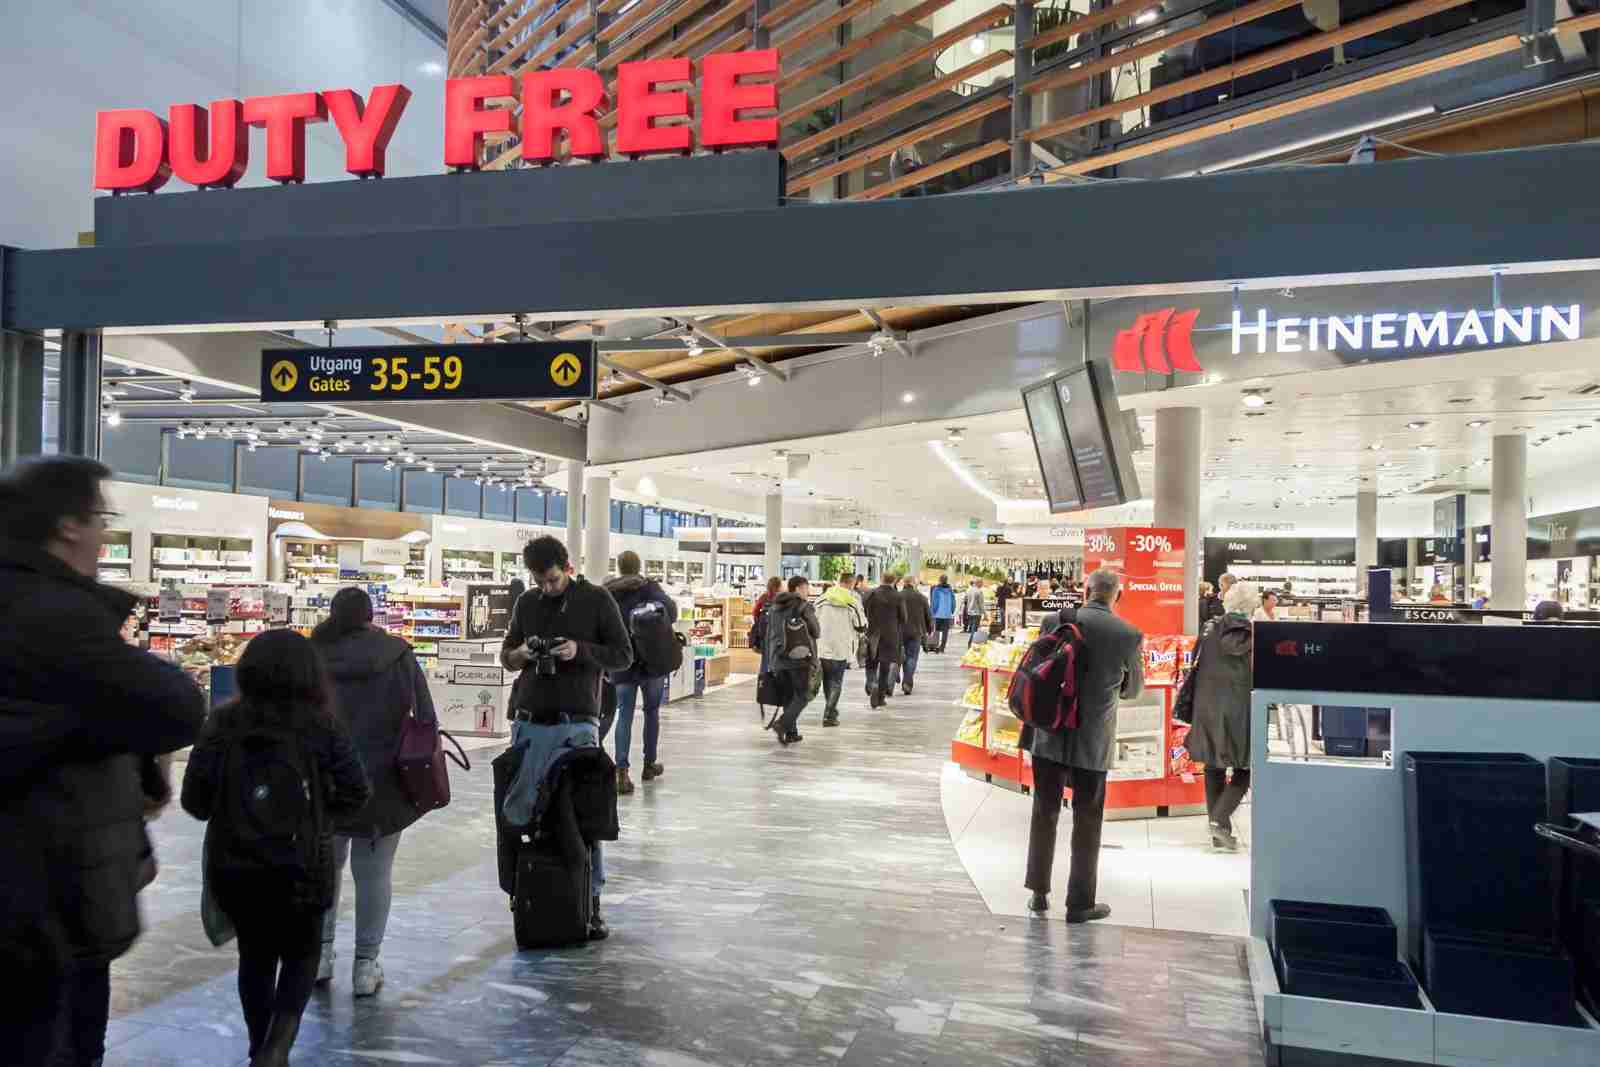 The Duty Free Shop at Oslo Gardermoen International Airport. (Photo by Doin/Shutterstock)